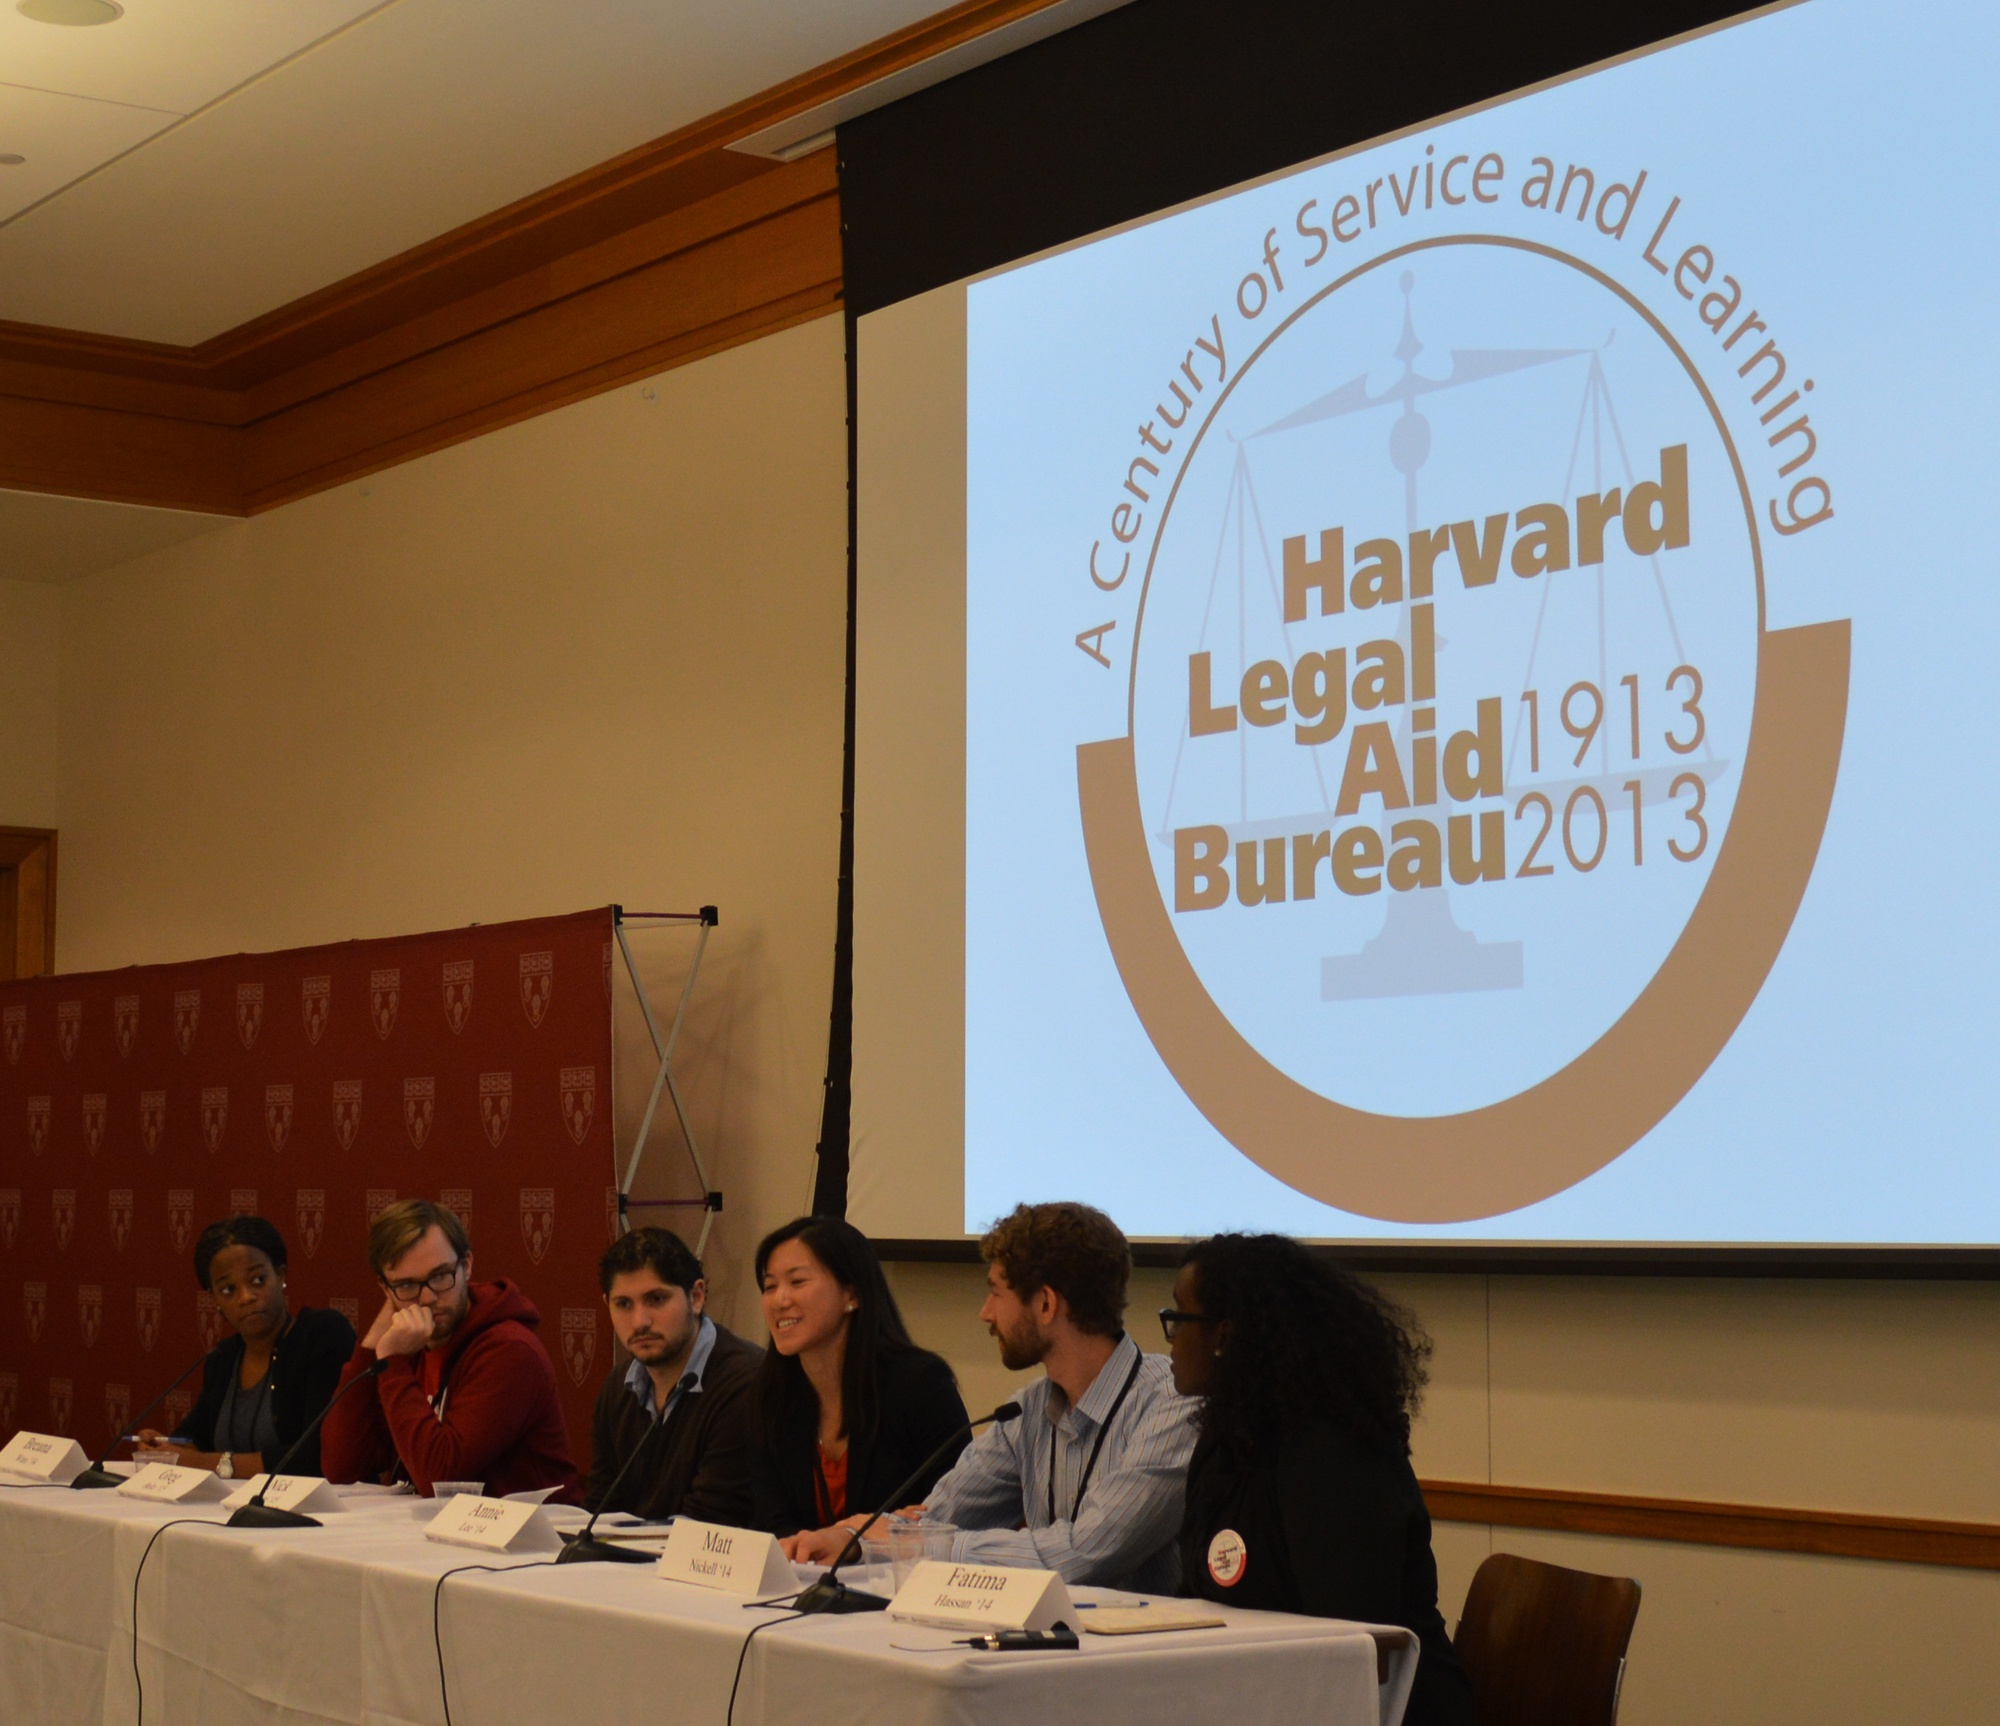 Members of the present Harvard Legal Aid Bureau answer questions in a town hall meeting at the 100th HLAB aniversary. The Harvard Legal Aid Bureau has been providing legal services to low-income individuals free of charge for the past century.